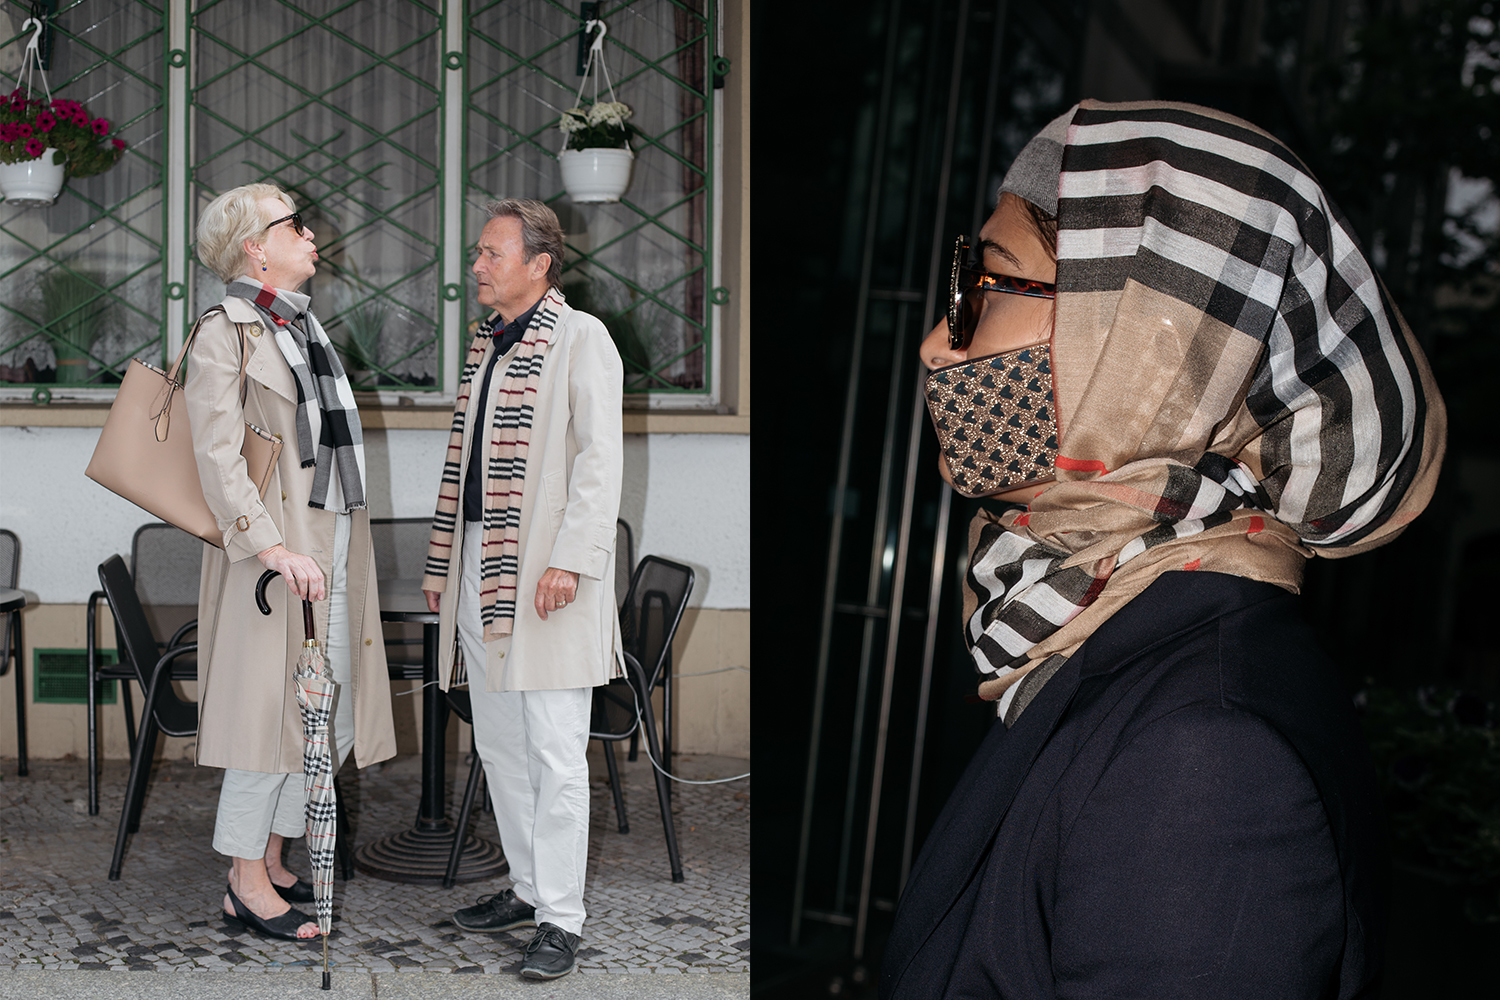 eae5ec2e Left: Handbag and scarf by Burberry, Coat by Burberry via Comme Des  Costumes, Umbrella by Burberry Right: Headscarf is model's own